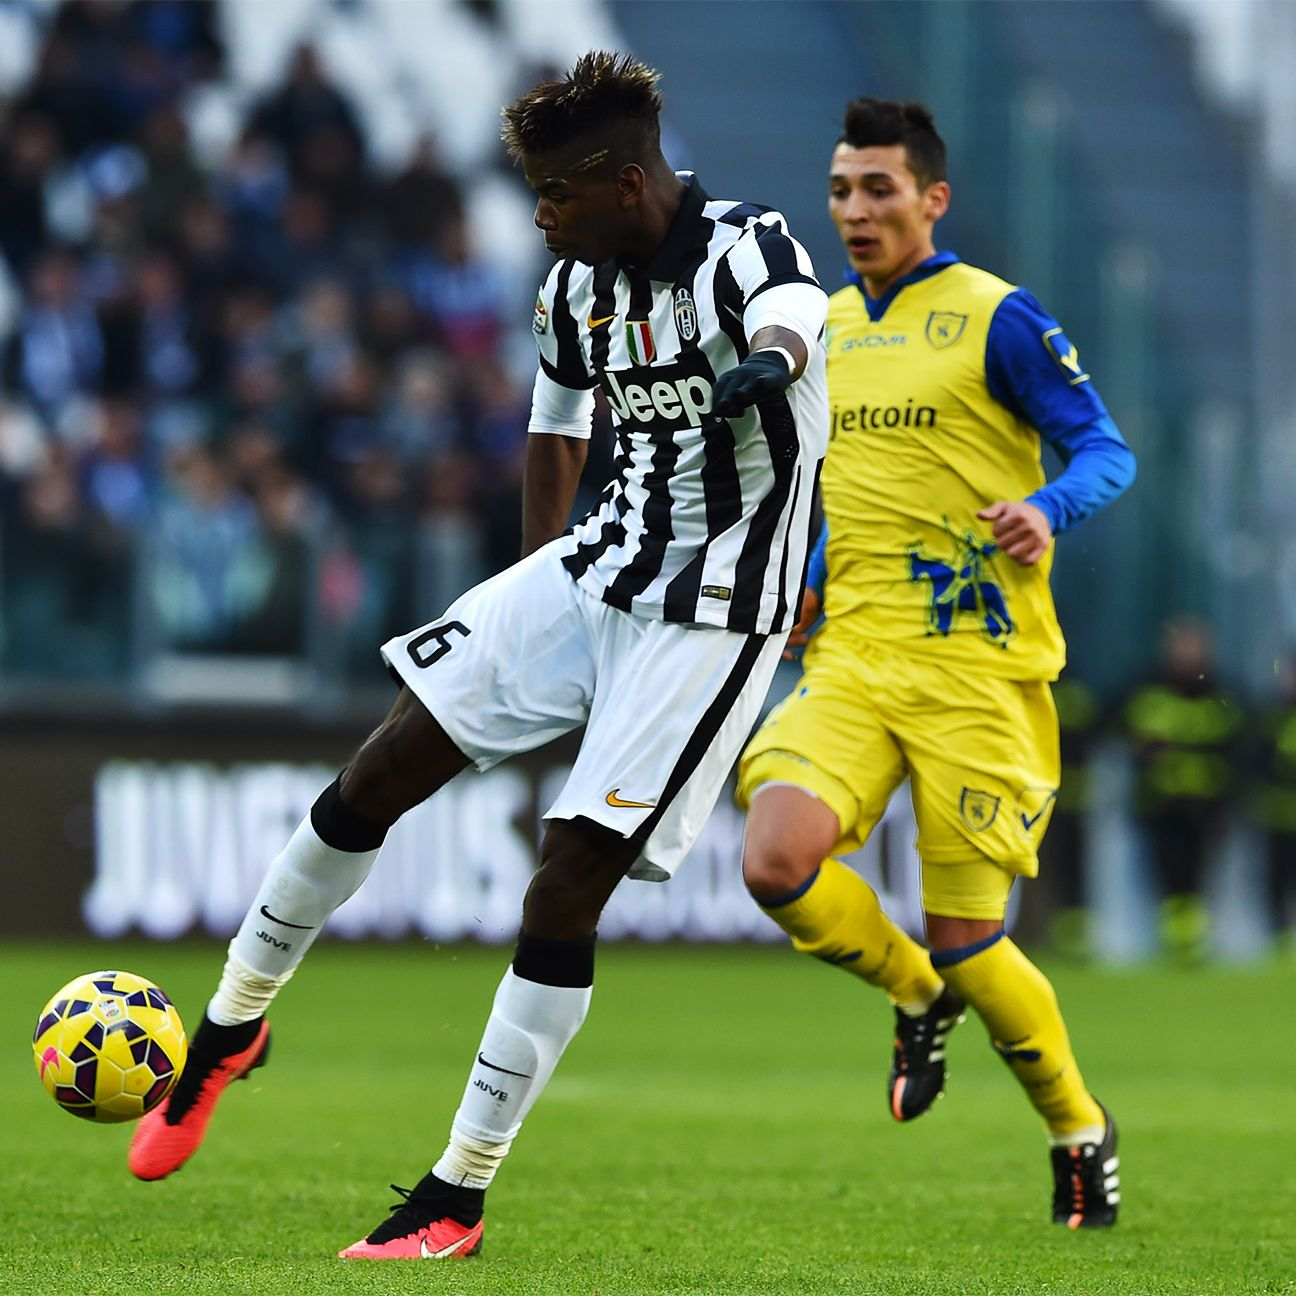 With the Juventus attacking line out of sorts, Paul Pogba stepped forward to lead the Serie A leader to victory.